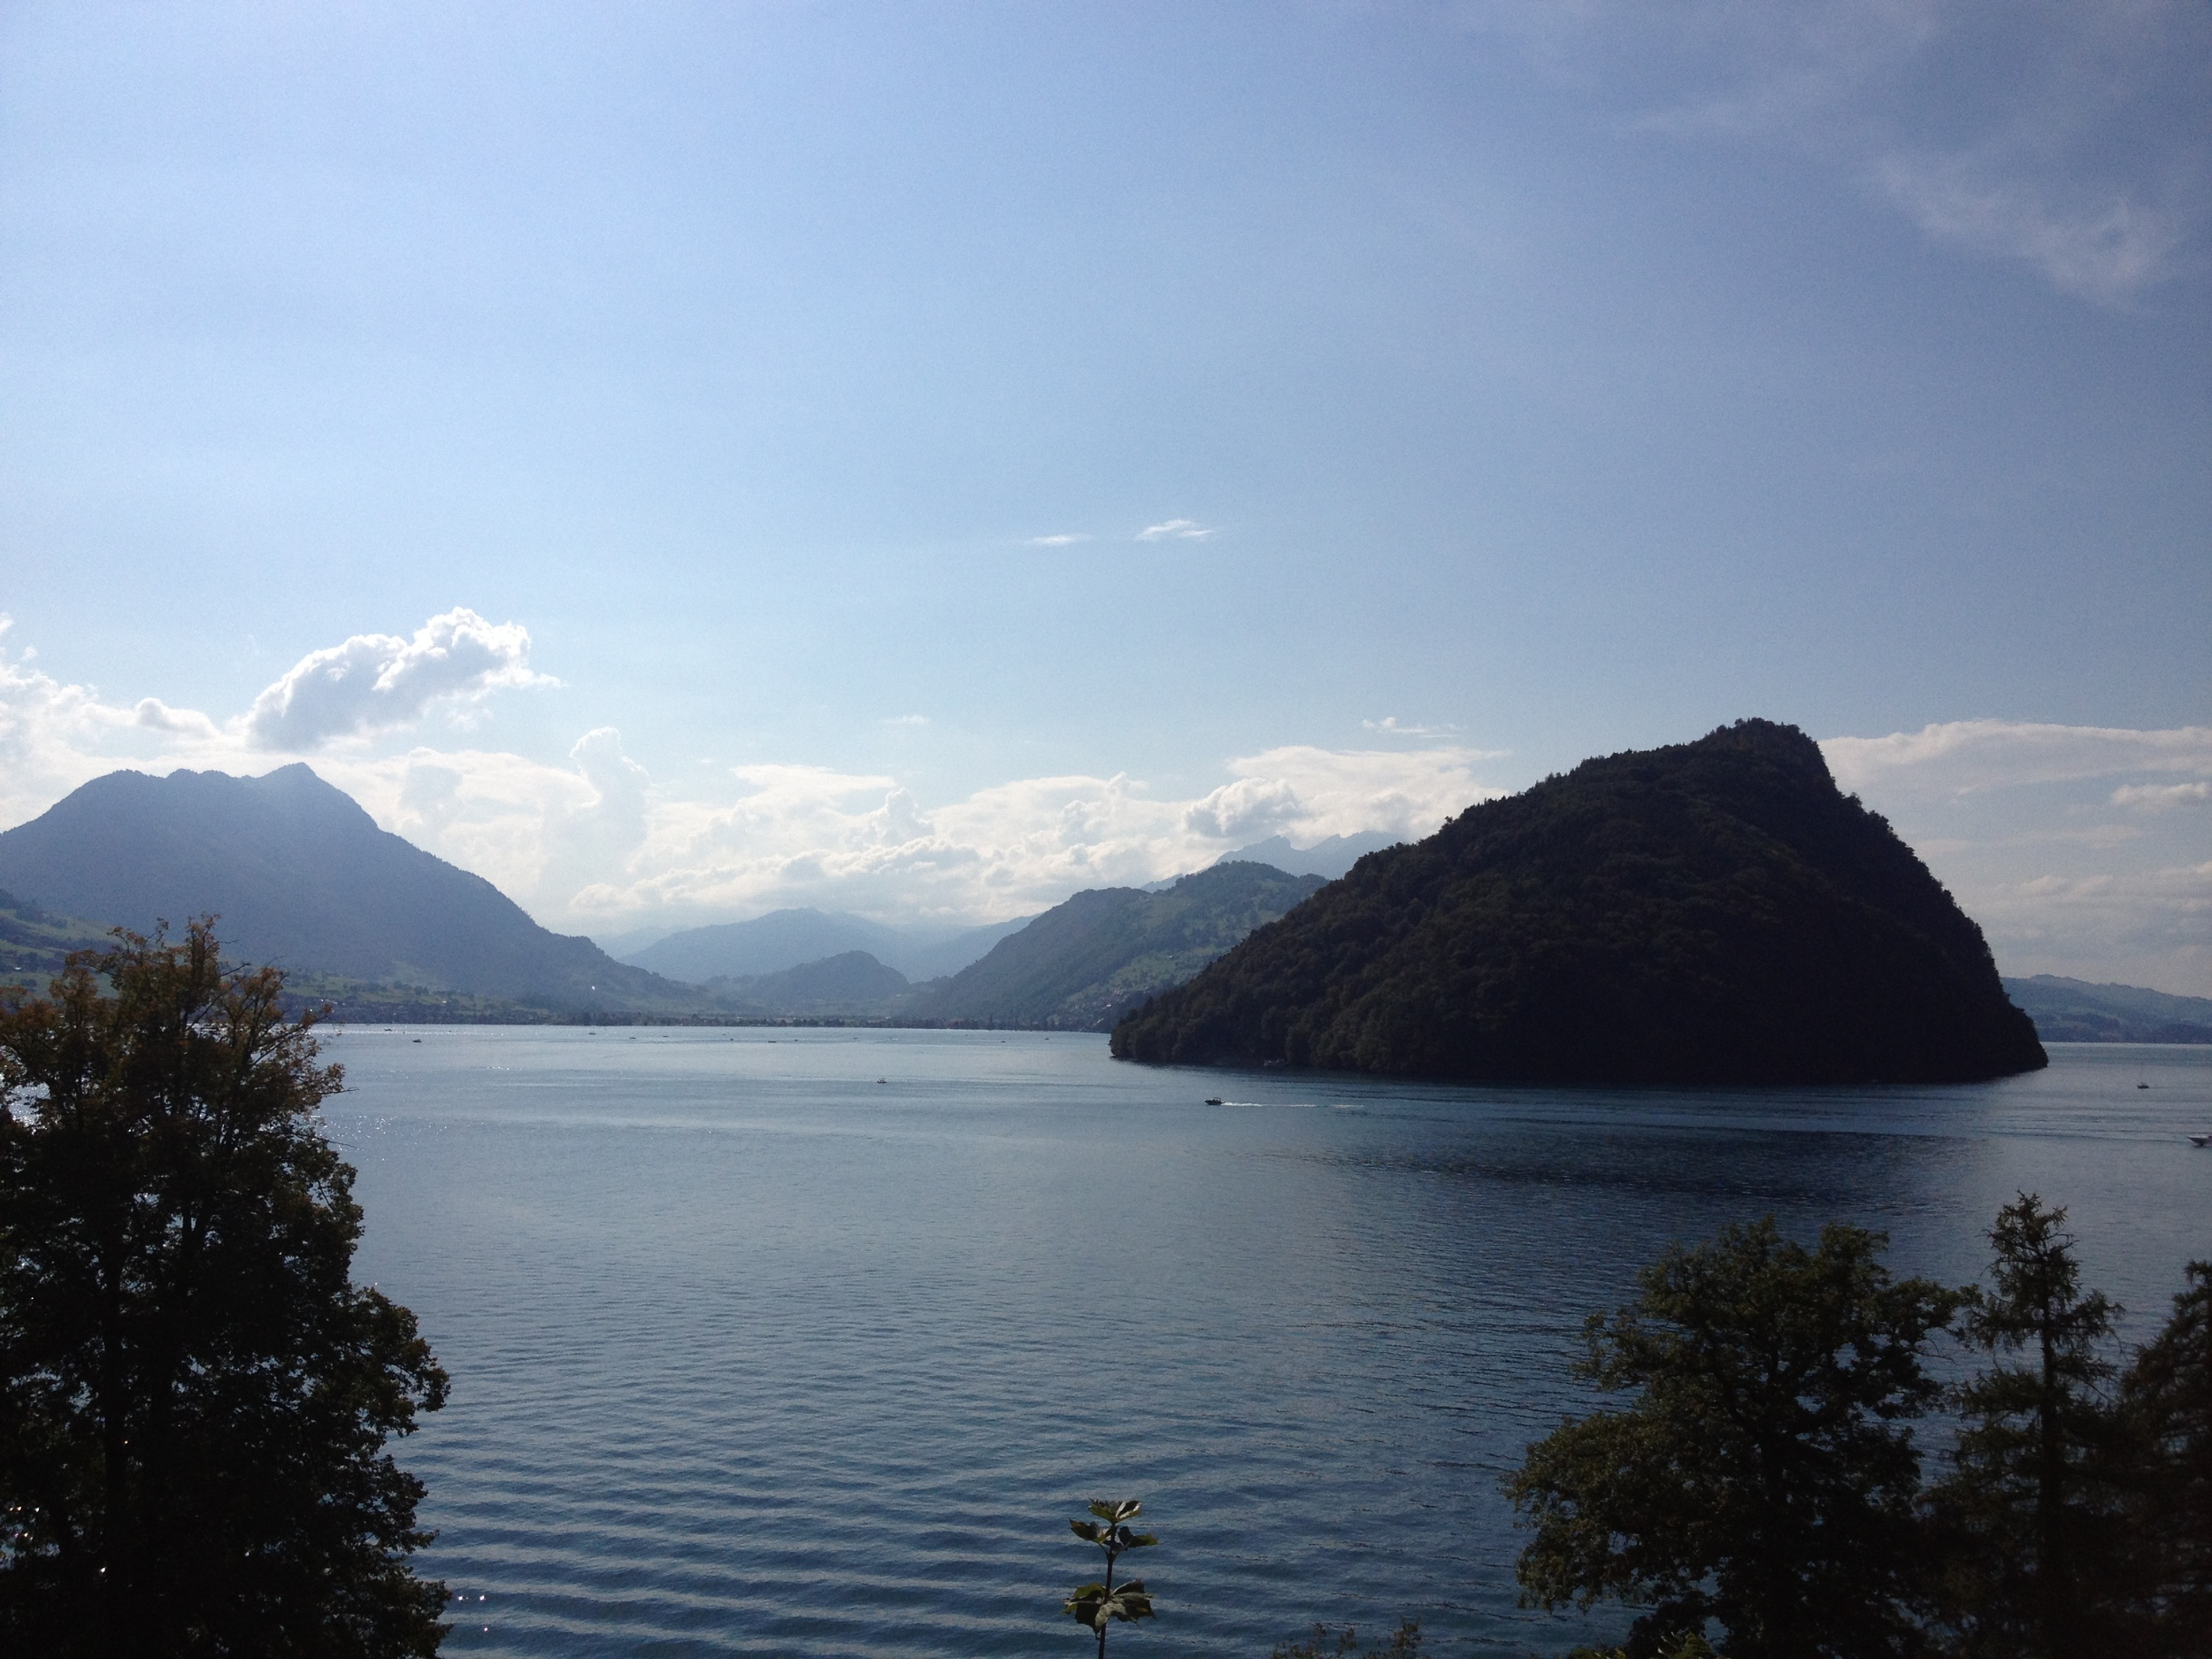 A view of the Vierwaldstättersee